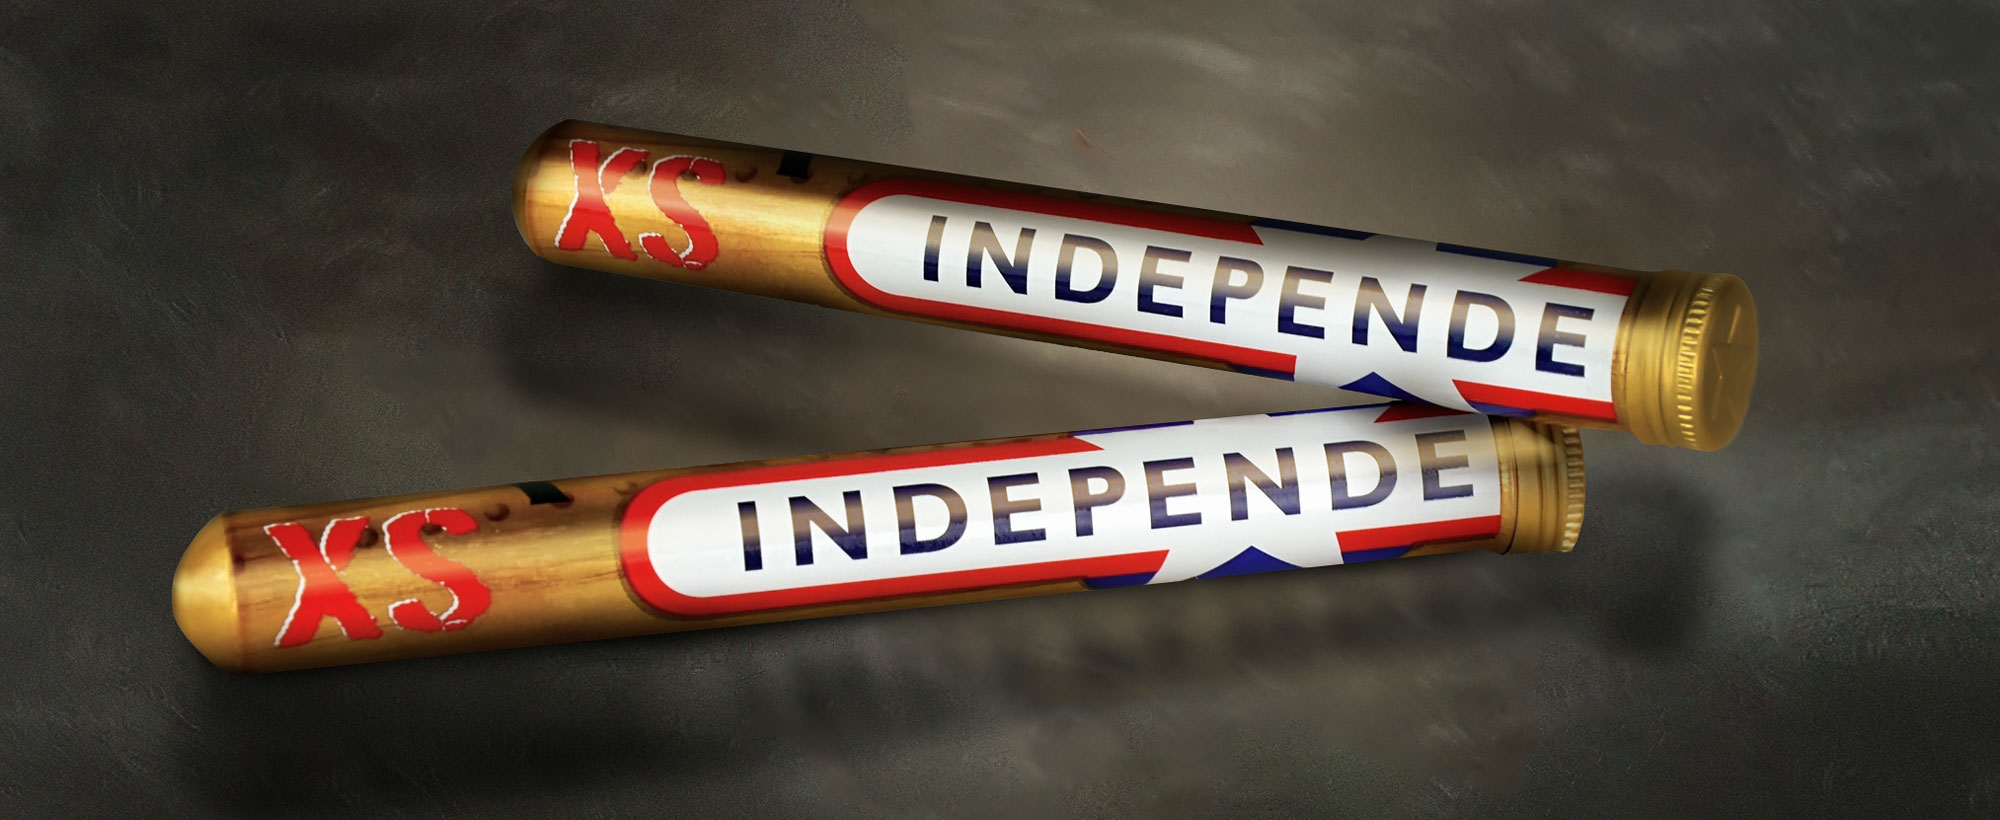 Independence XS Xtreme Zigarre